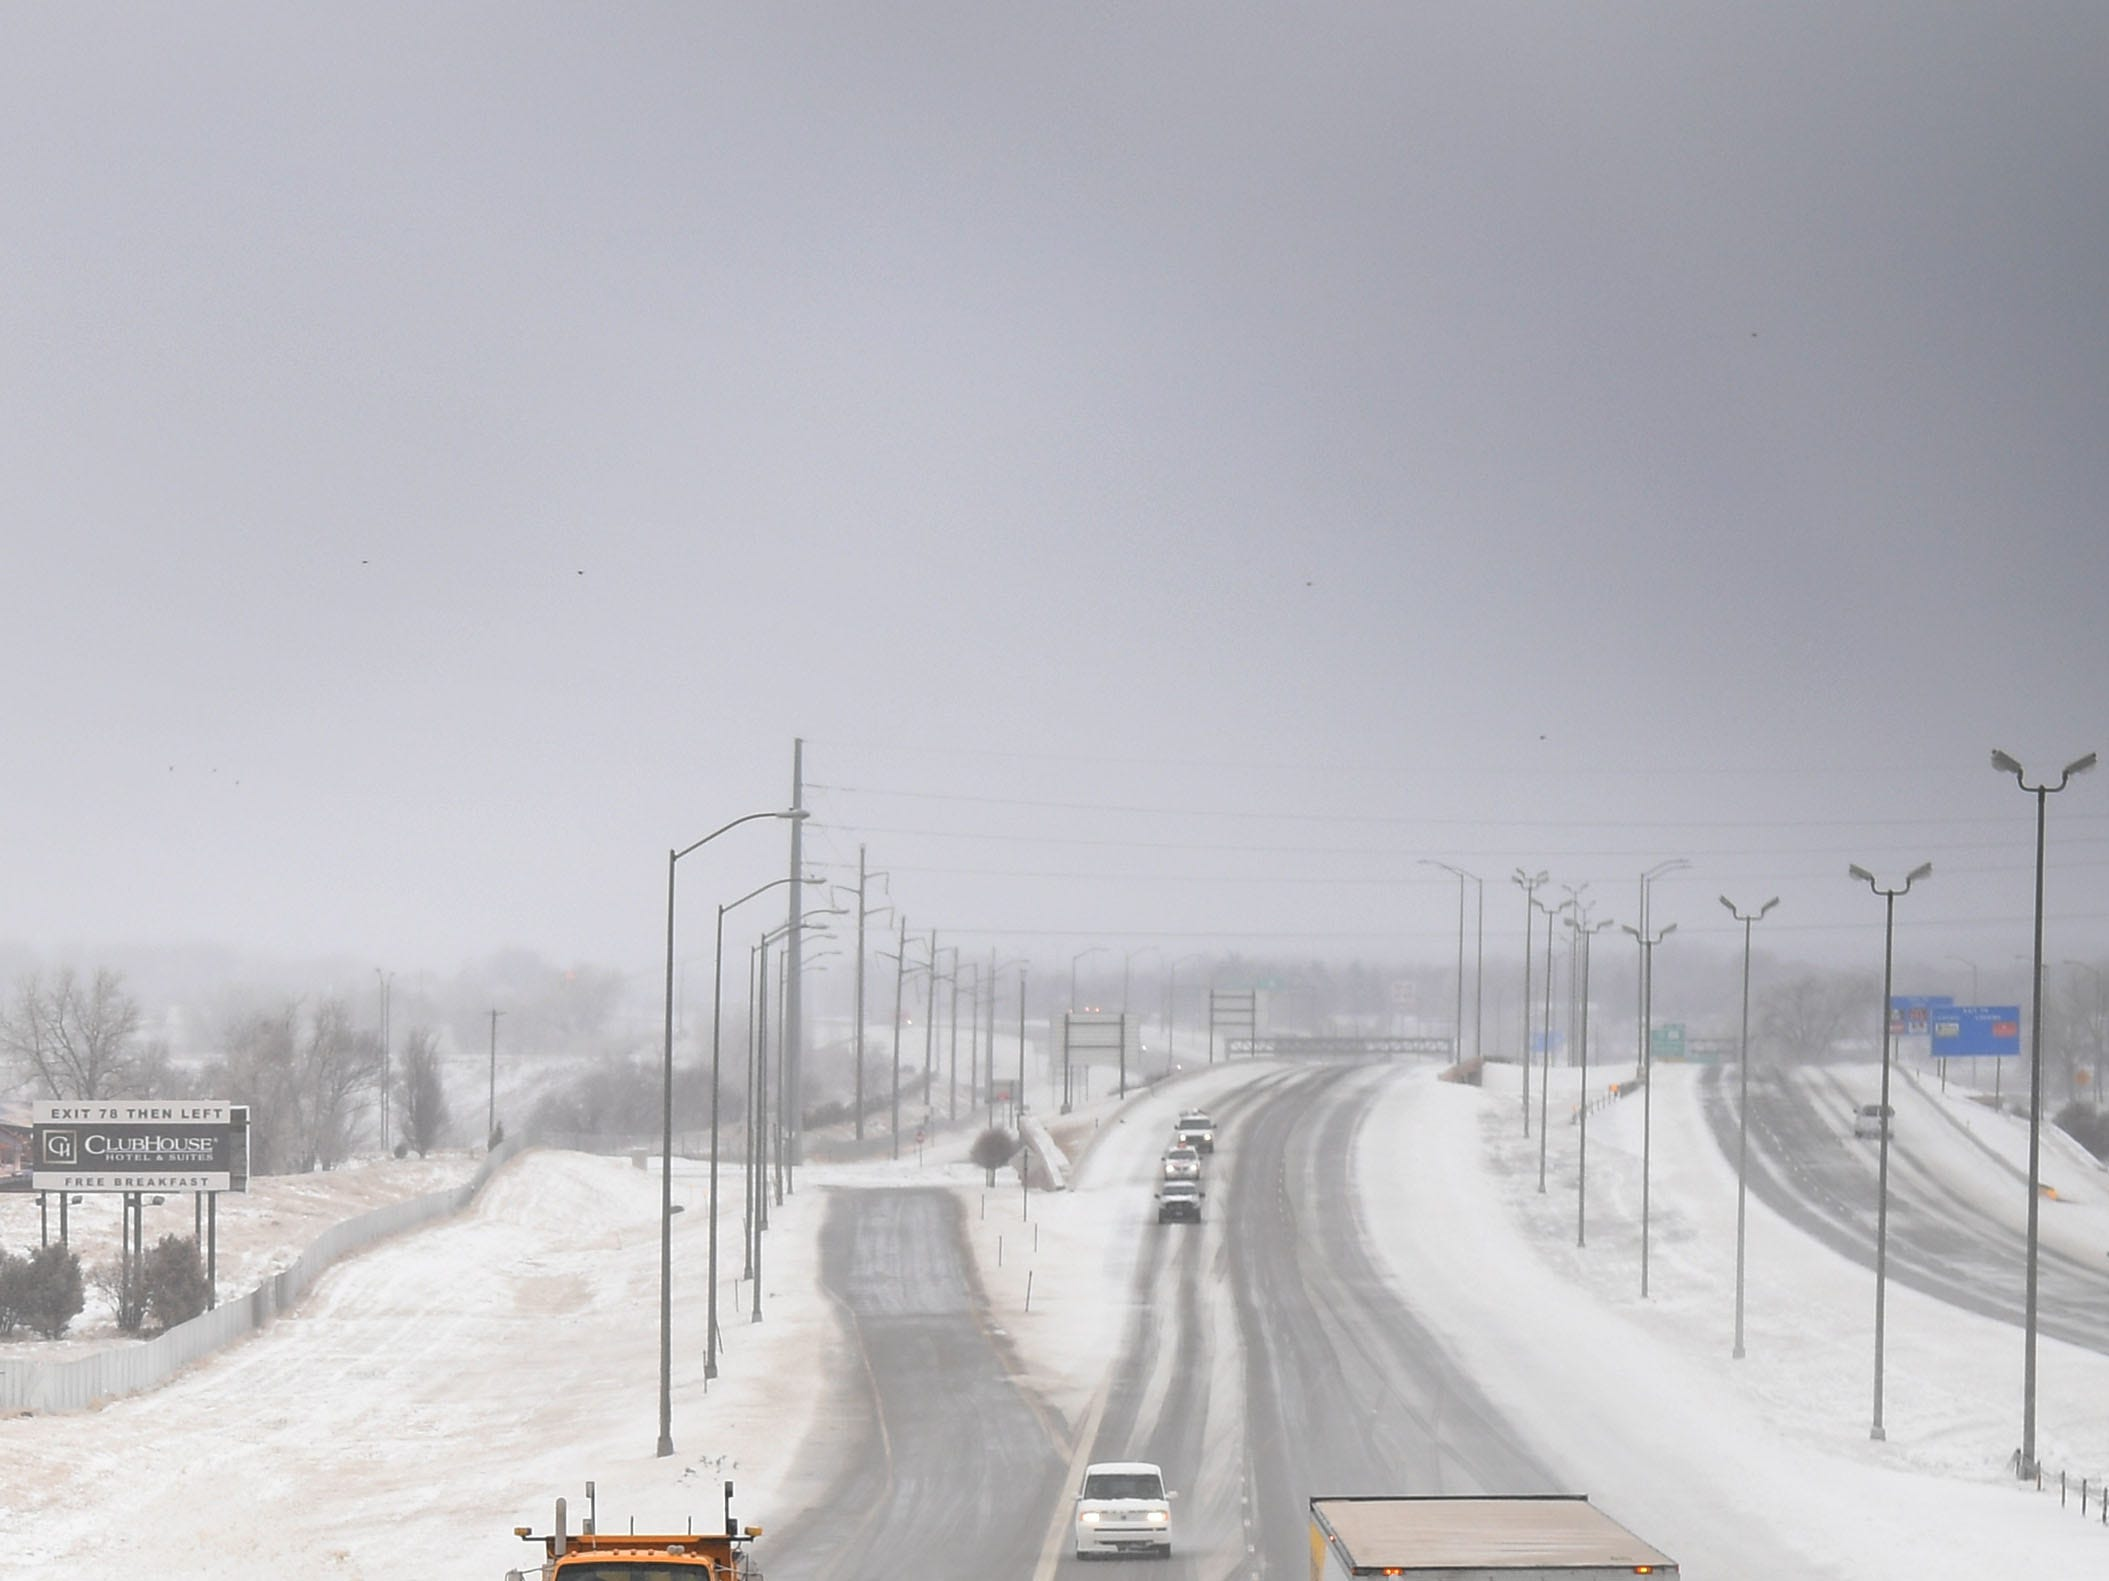 Snow plows clear Interstate 29 Thursday, April 11, in Sioux Falls. I 29 is still closed from Sioux Falls to the North Dakota border, while Interstate 90 remains shuttered from Sioux Falls to New Underwood.